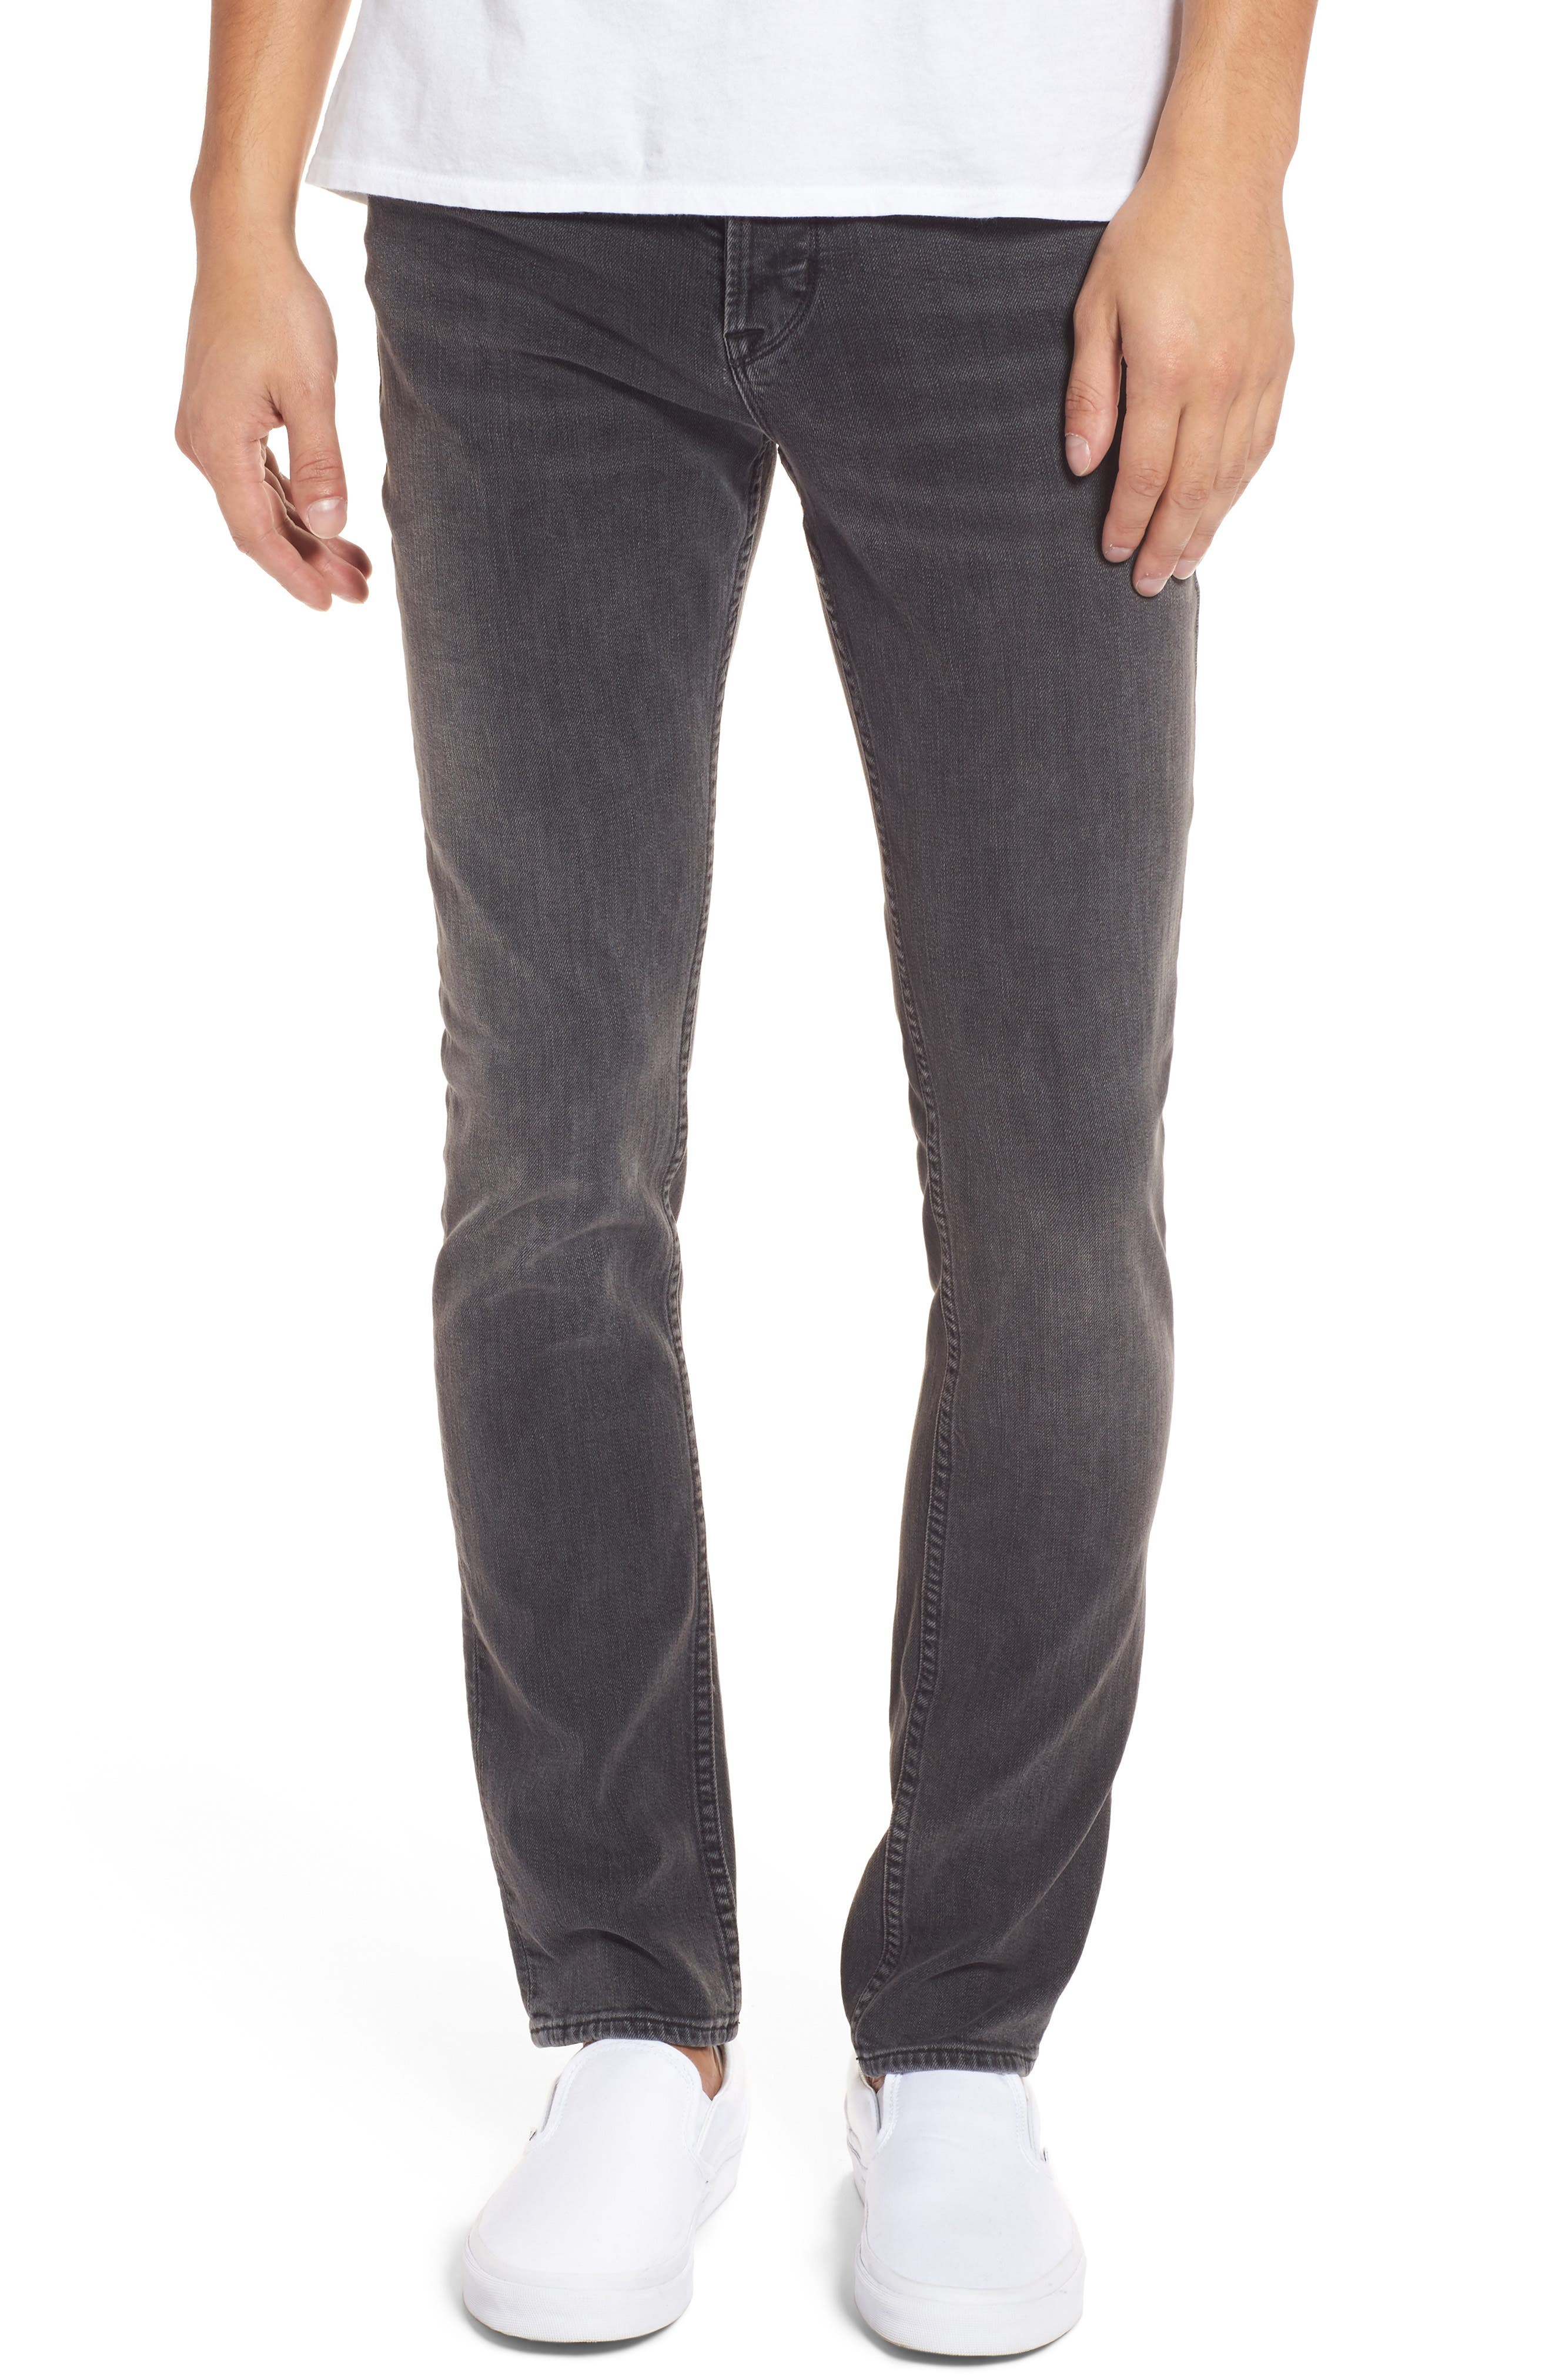 Alternate Image 1 Selected - Hudson Jeans Axl Skinny Fit Jeans (Oxidize)